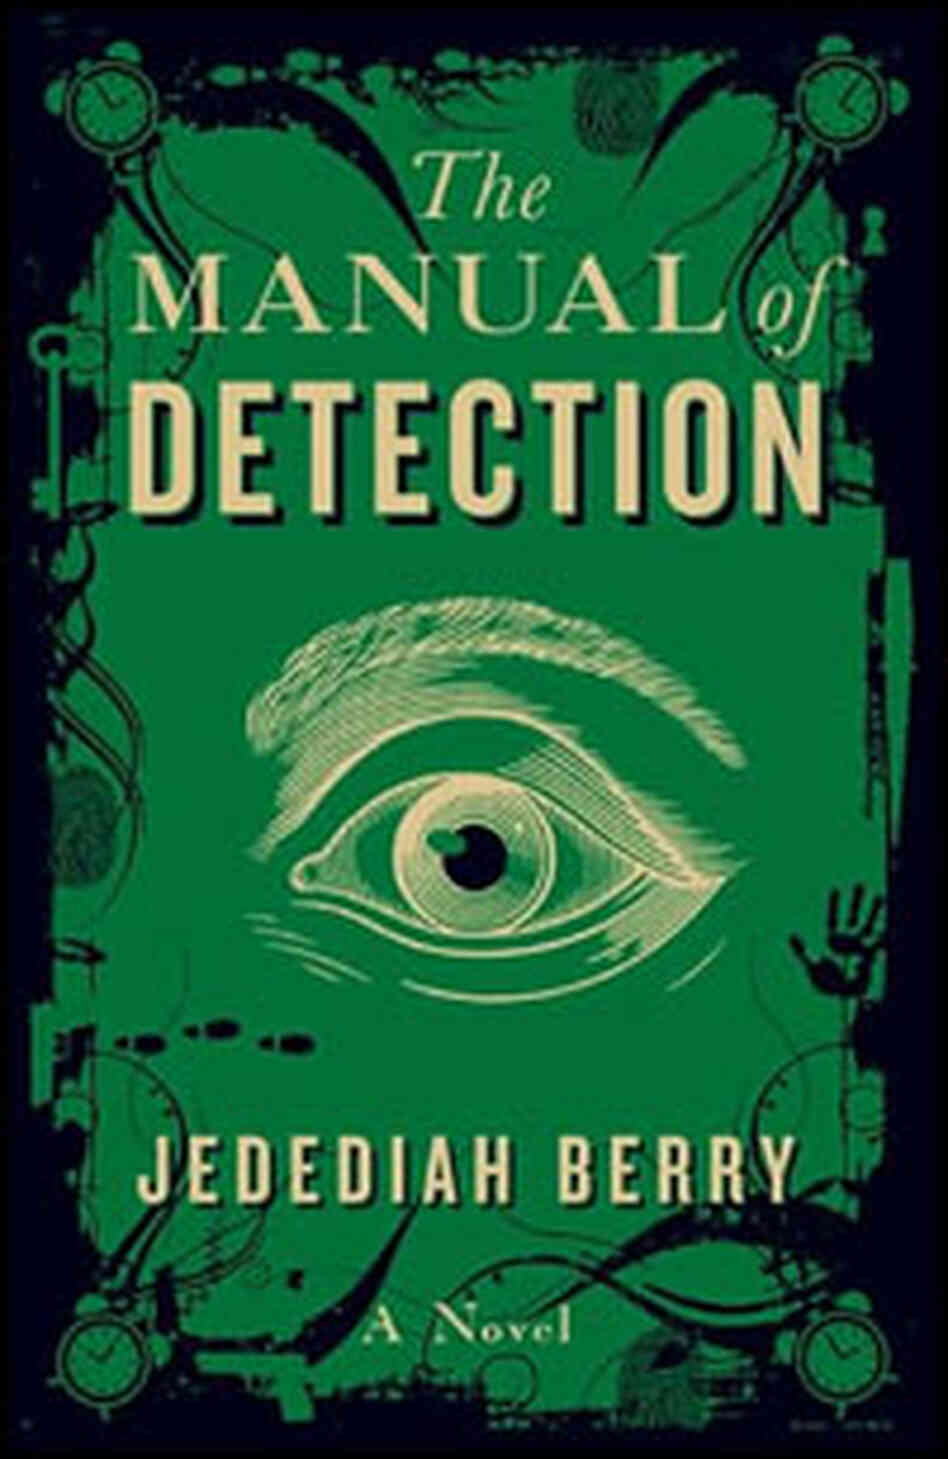 'The Manual of Detection'